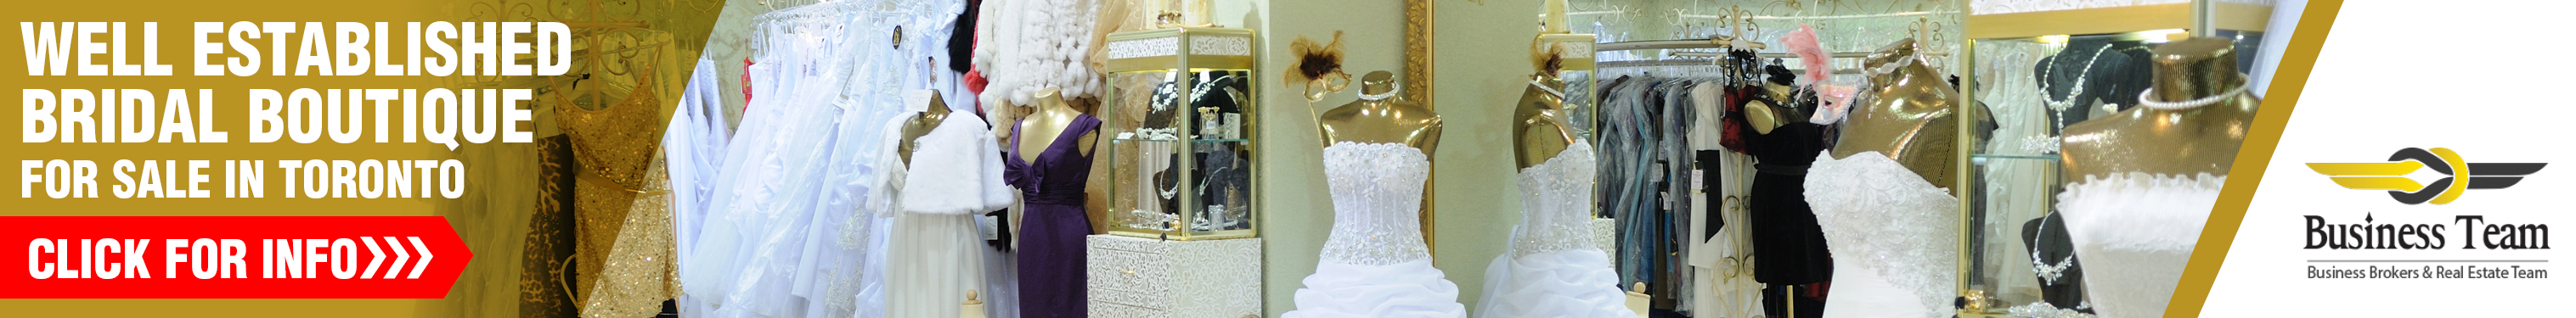 Bridal Boutique for Sale in Toronto